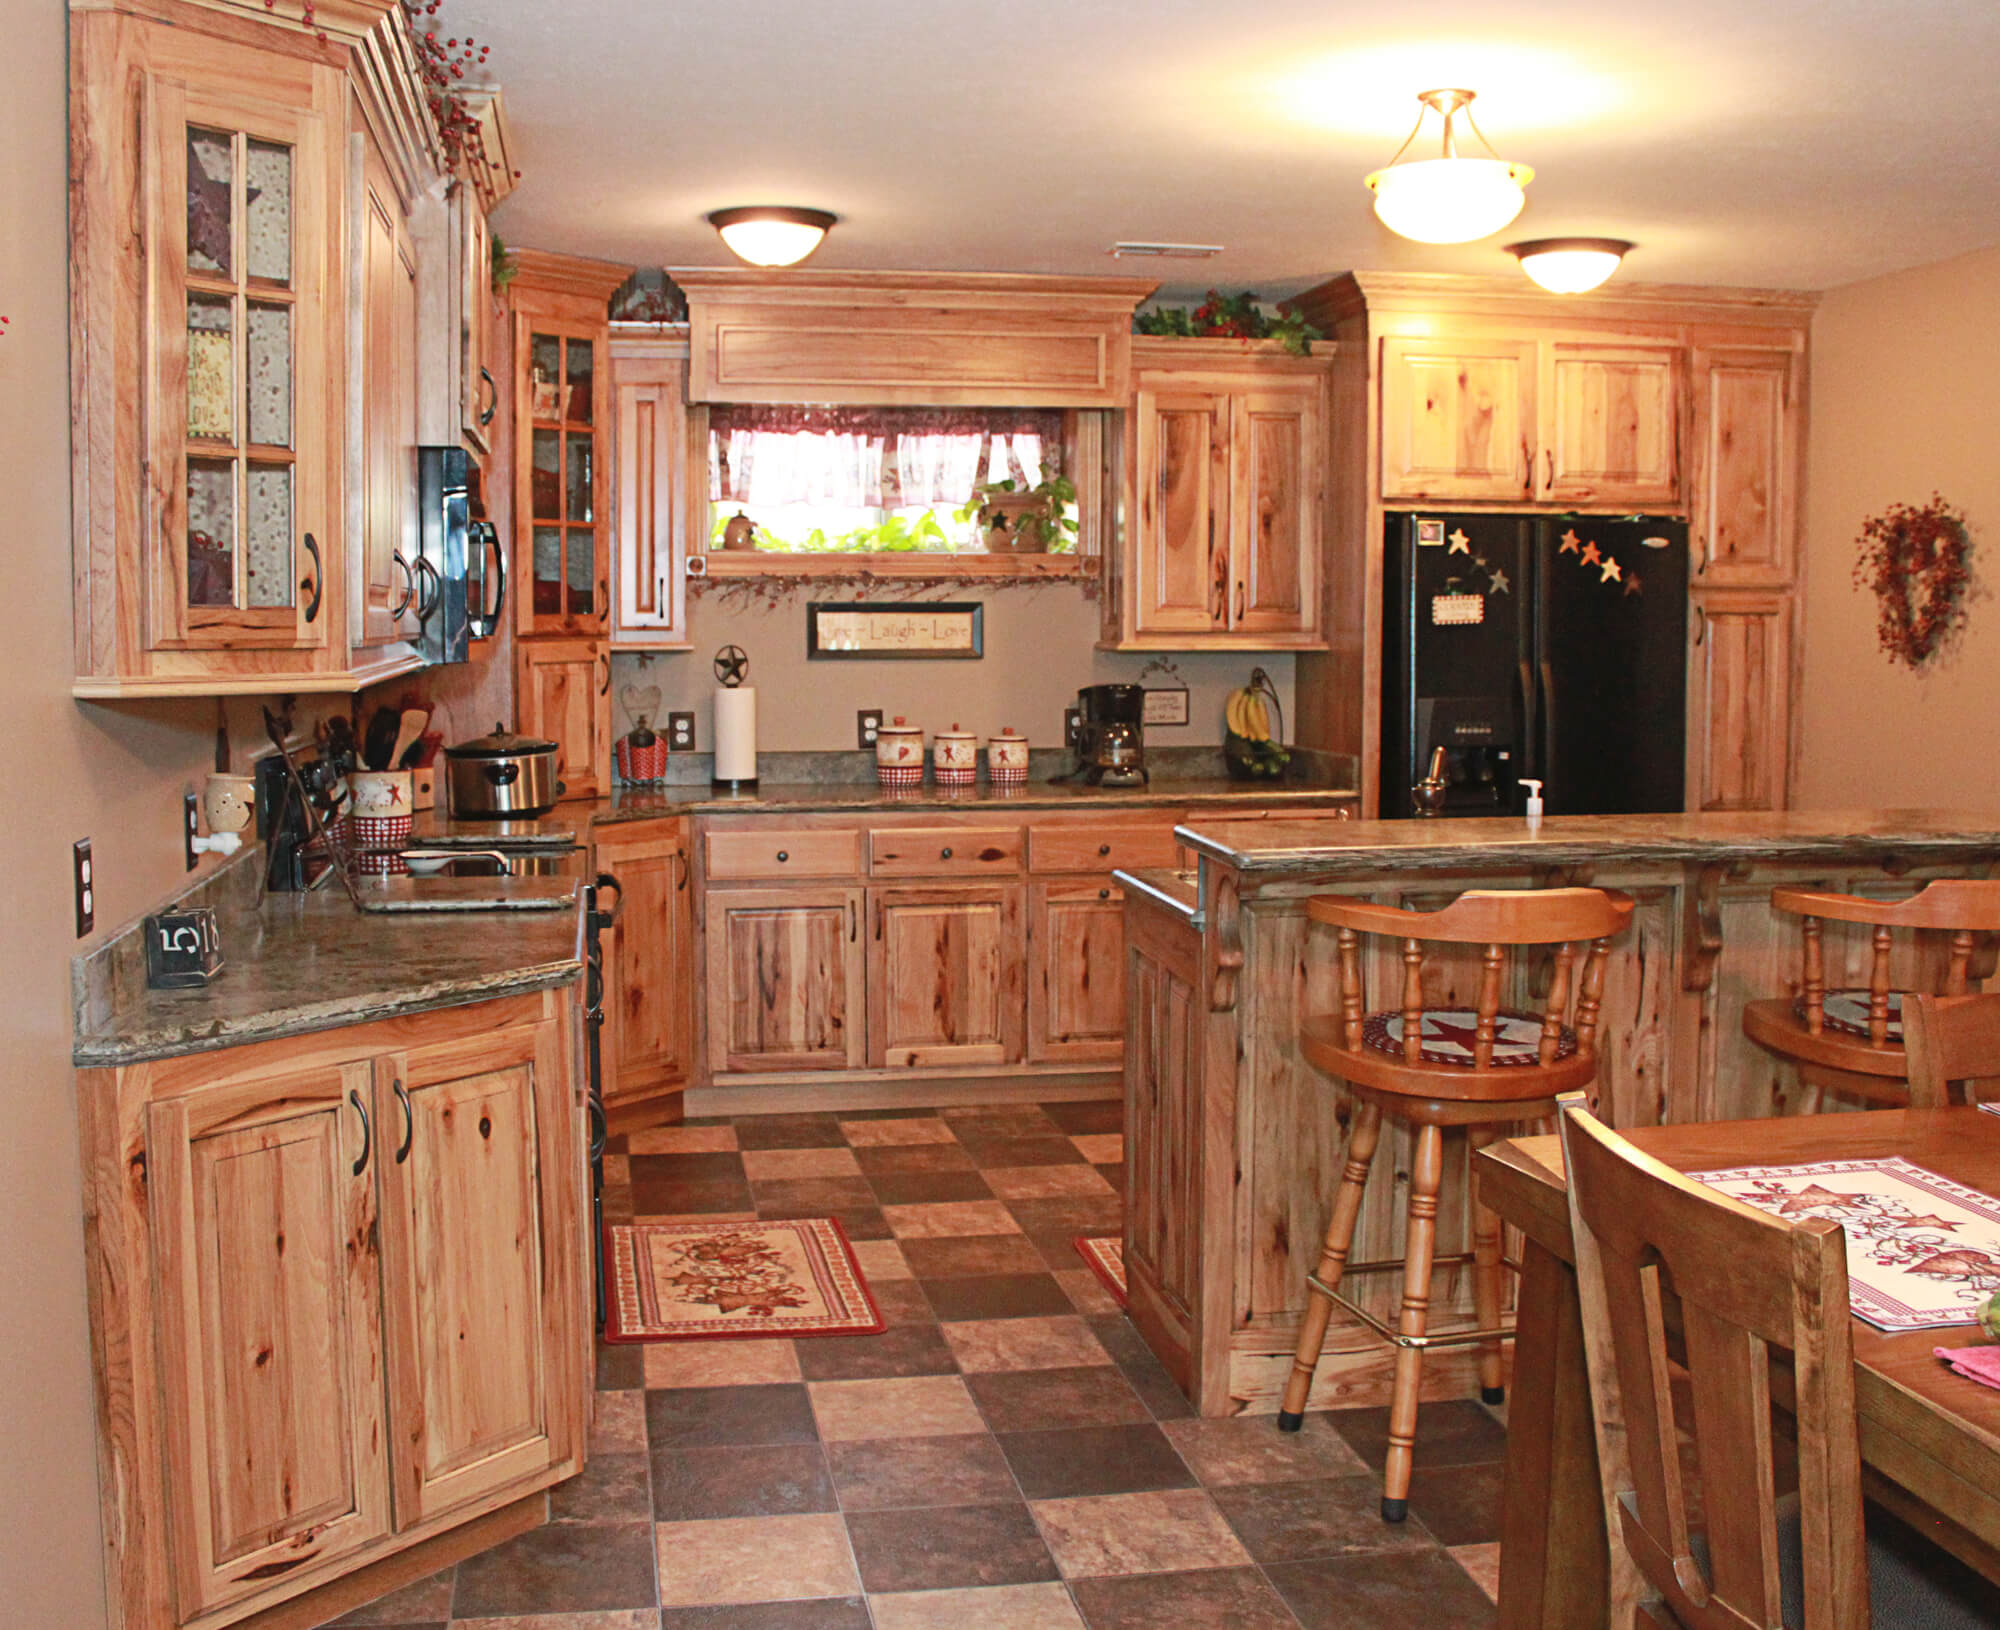 The Cabinets Plus